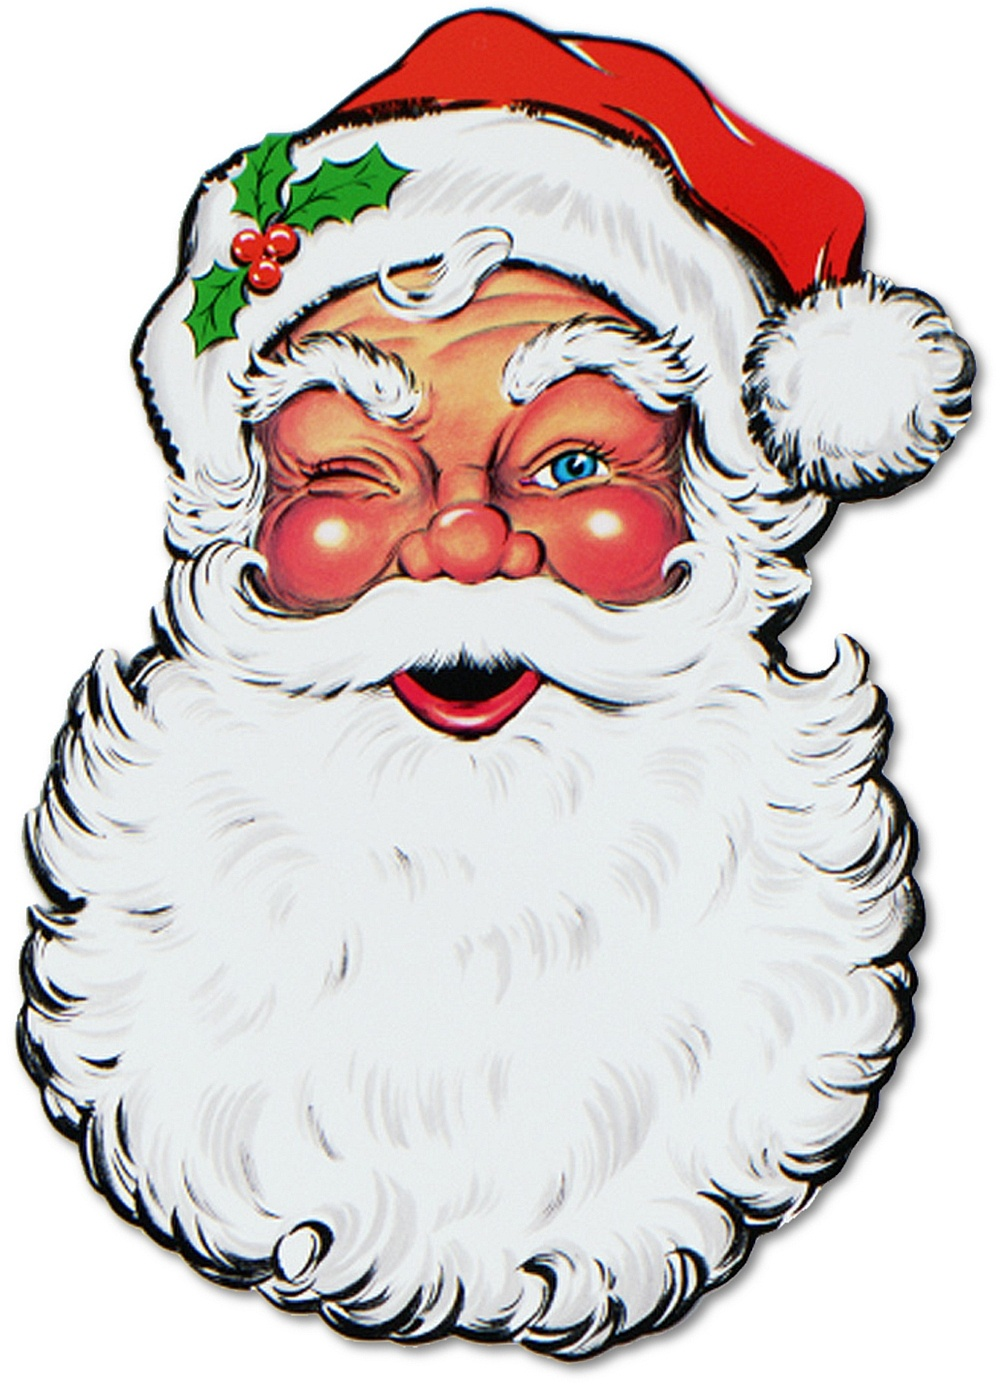 Free Santa Face Picture, Download Free Clip Art, Free Clip Art On - Free Printable Santa Claus Face